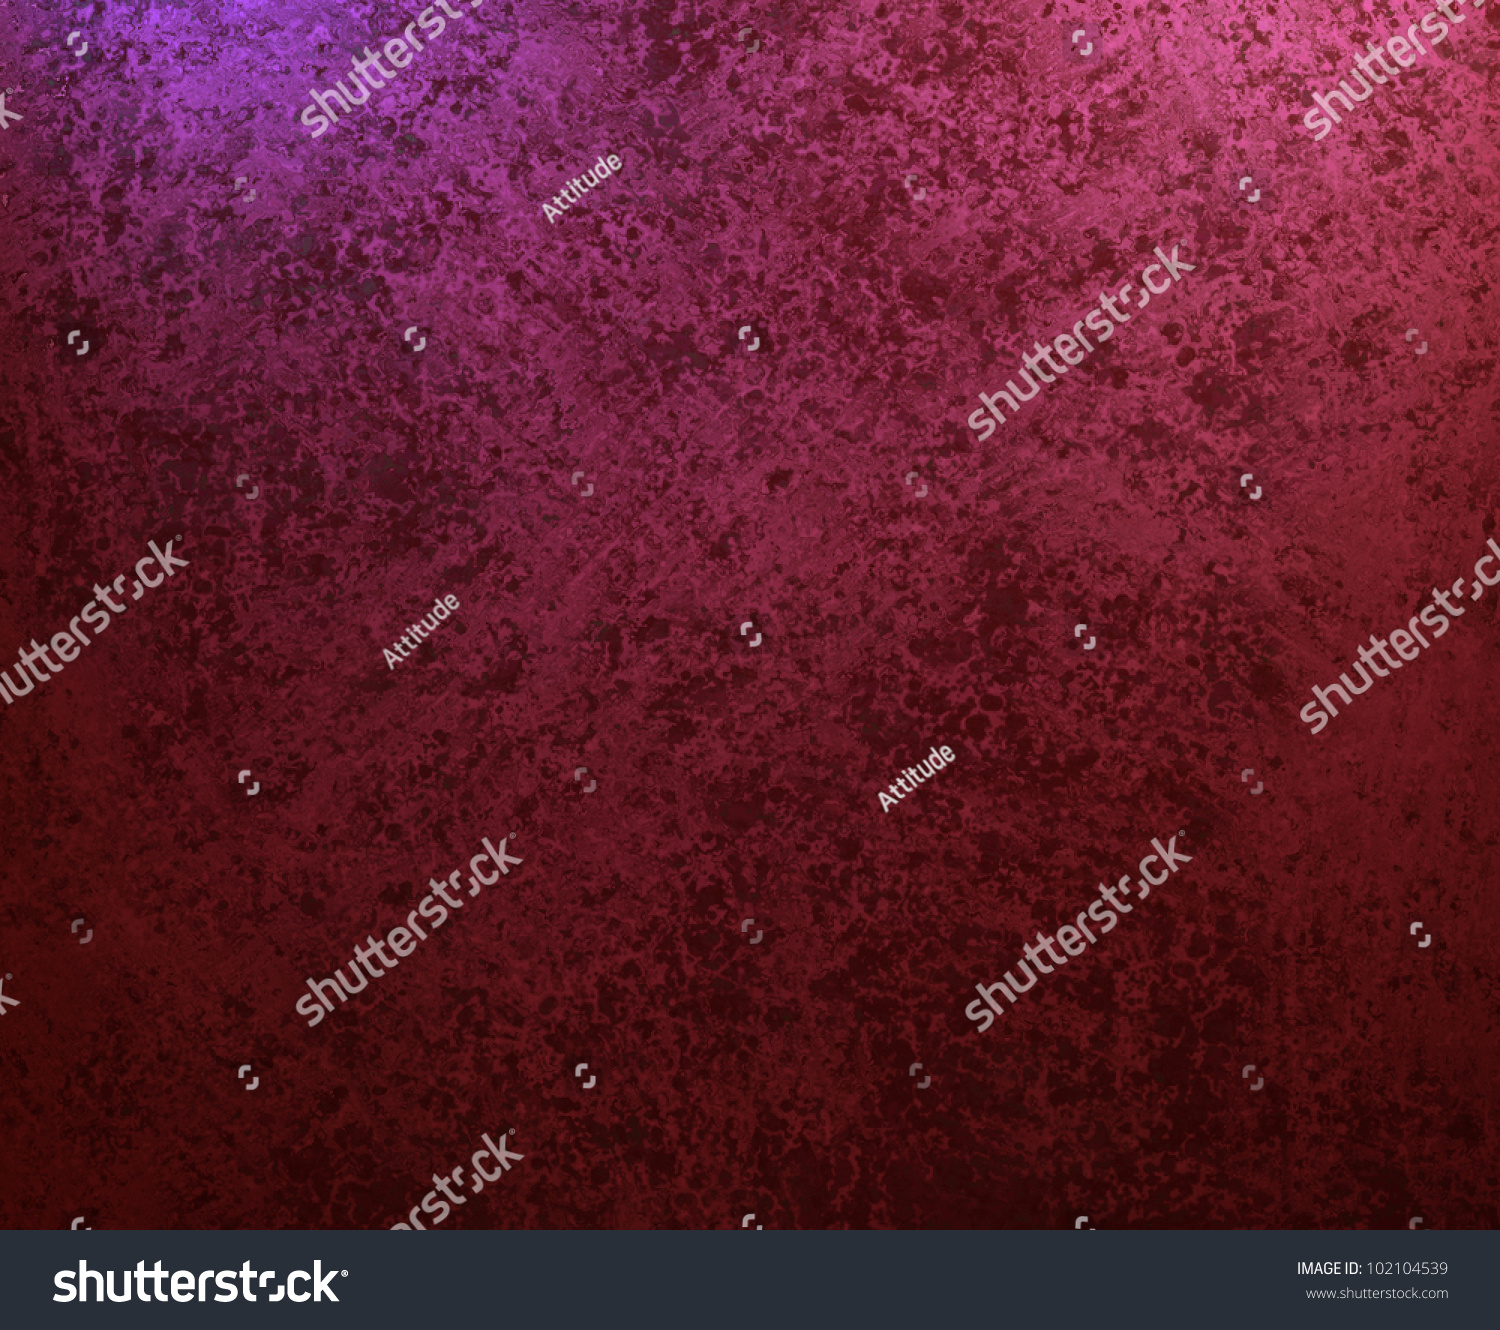 Best Wallpaper Marble Burgundy - stock-photo-burgundy-red-background-wallpaper-with-vintage-grunge-background-texture-design-and-lighting-has-102104539  Trends_211630.jpg